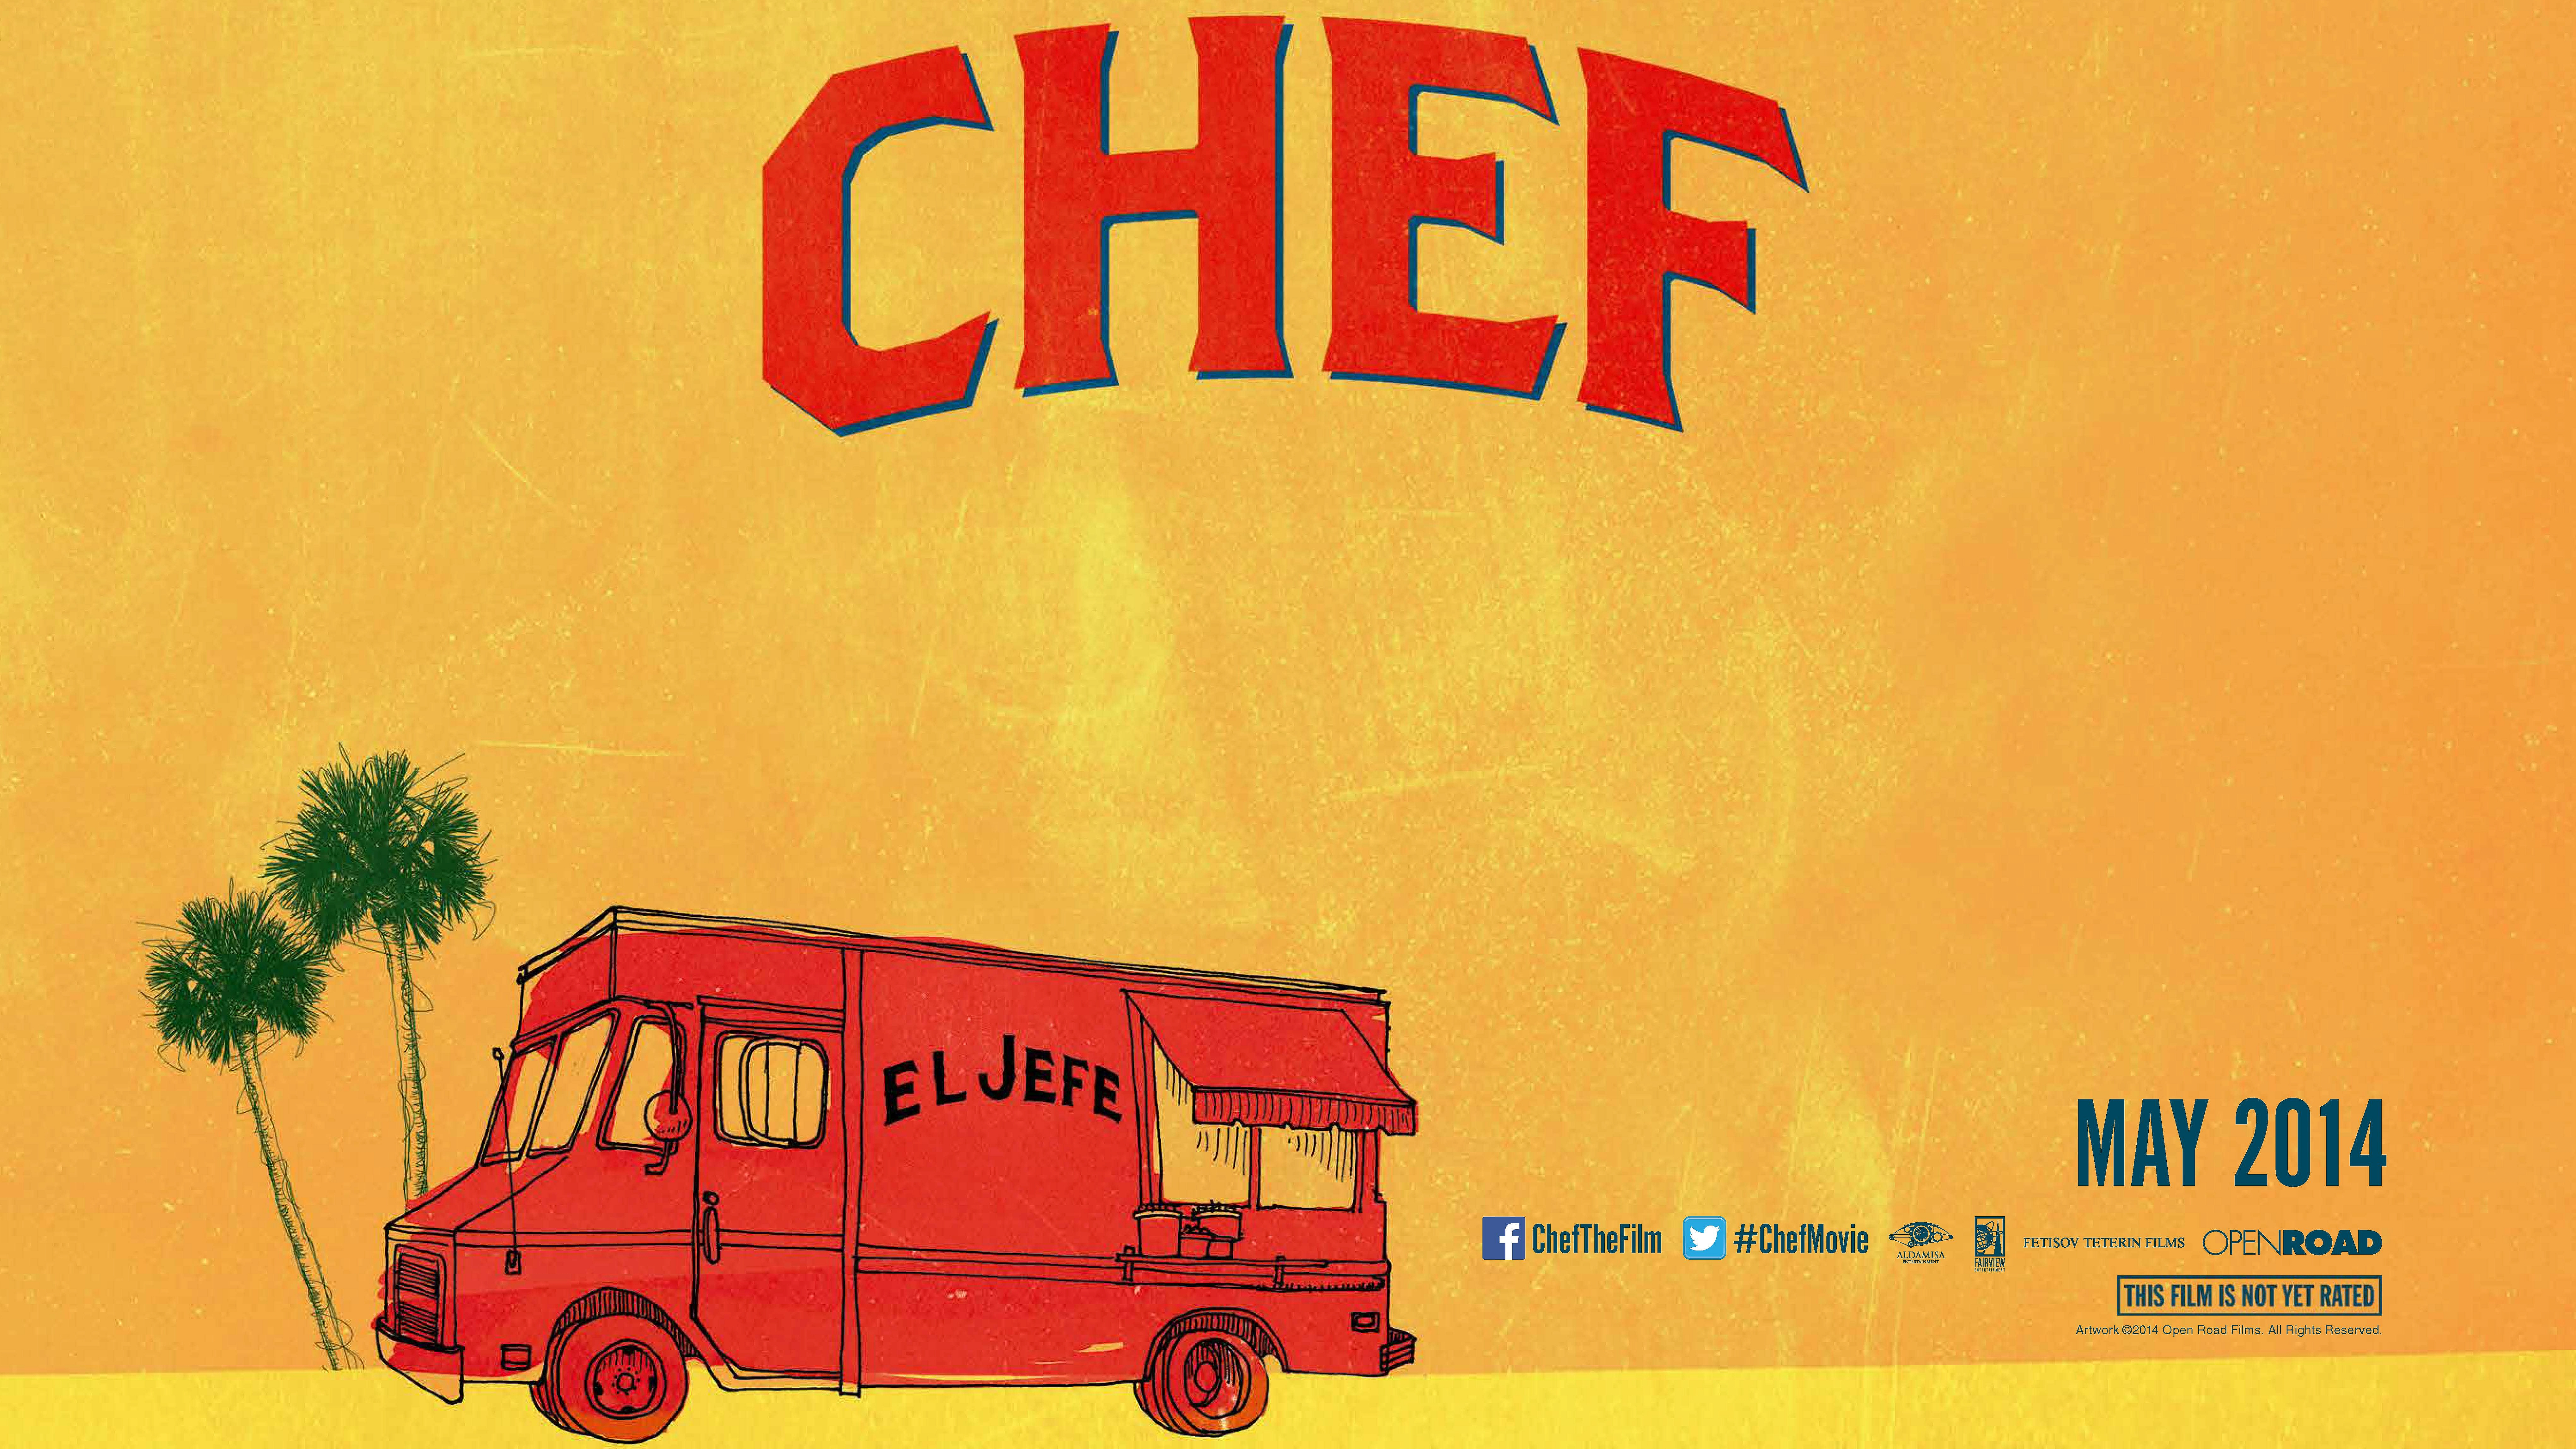 Chef 8k Ultra HD Wallpaper and Background Image | 8150x4584 | ID ... for Chef Wallpaper Hd  66pct